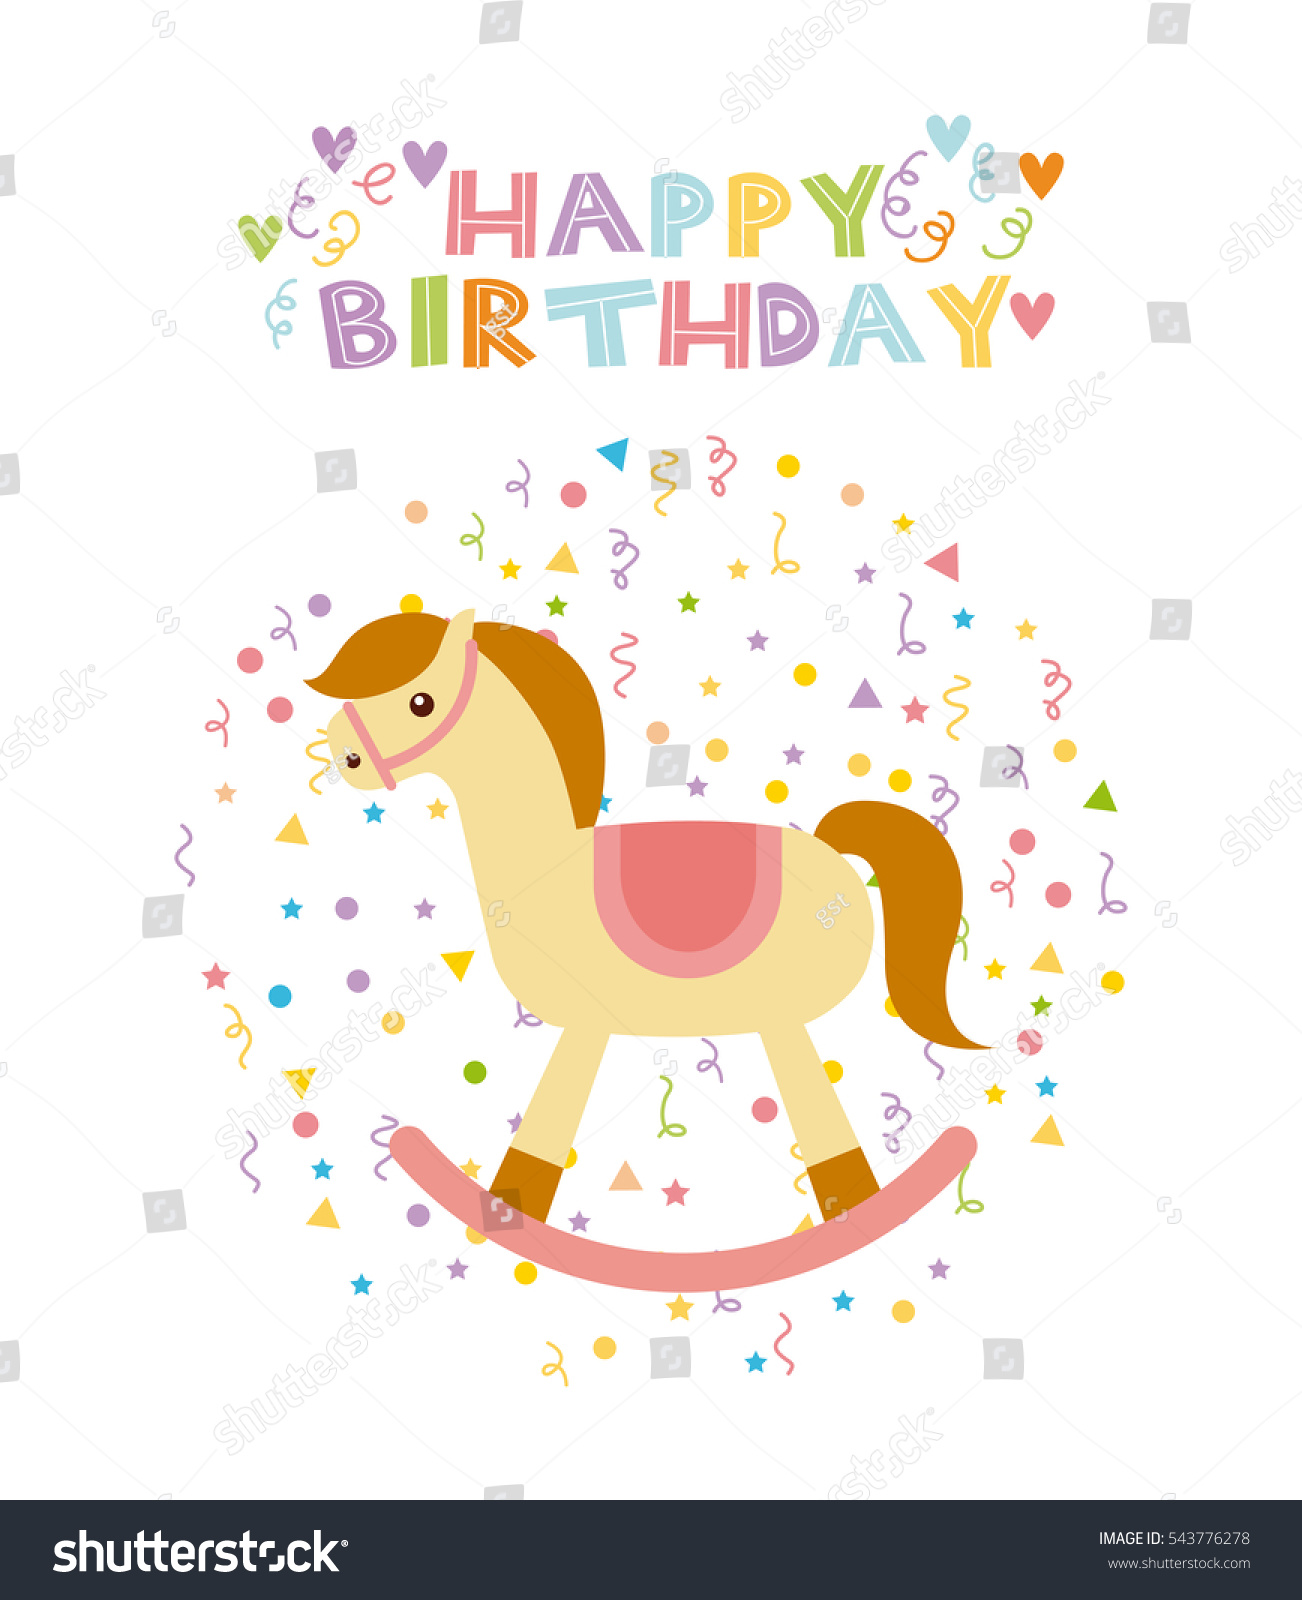 Happy birthday card horse toy cute stock vector 543776278 shutterstock happy birthday card with horse toy cute icon over white background colorful design vector bookmarktalkfo Image collections